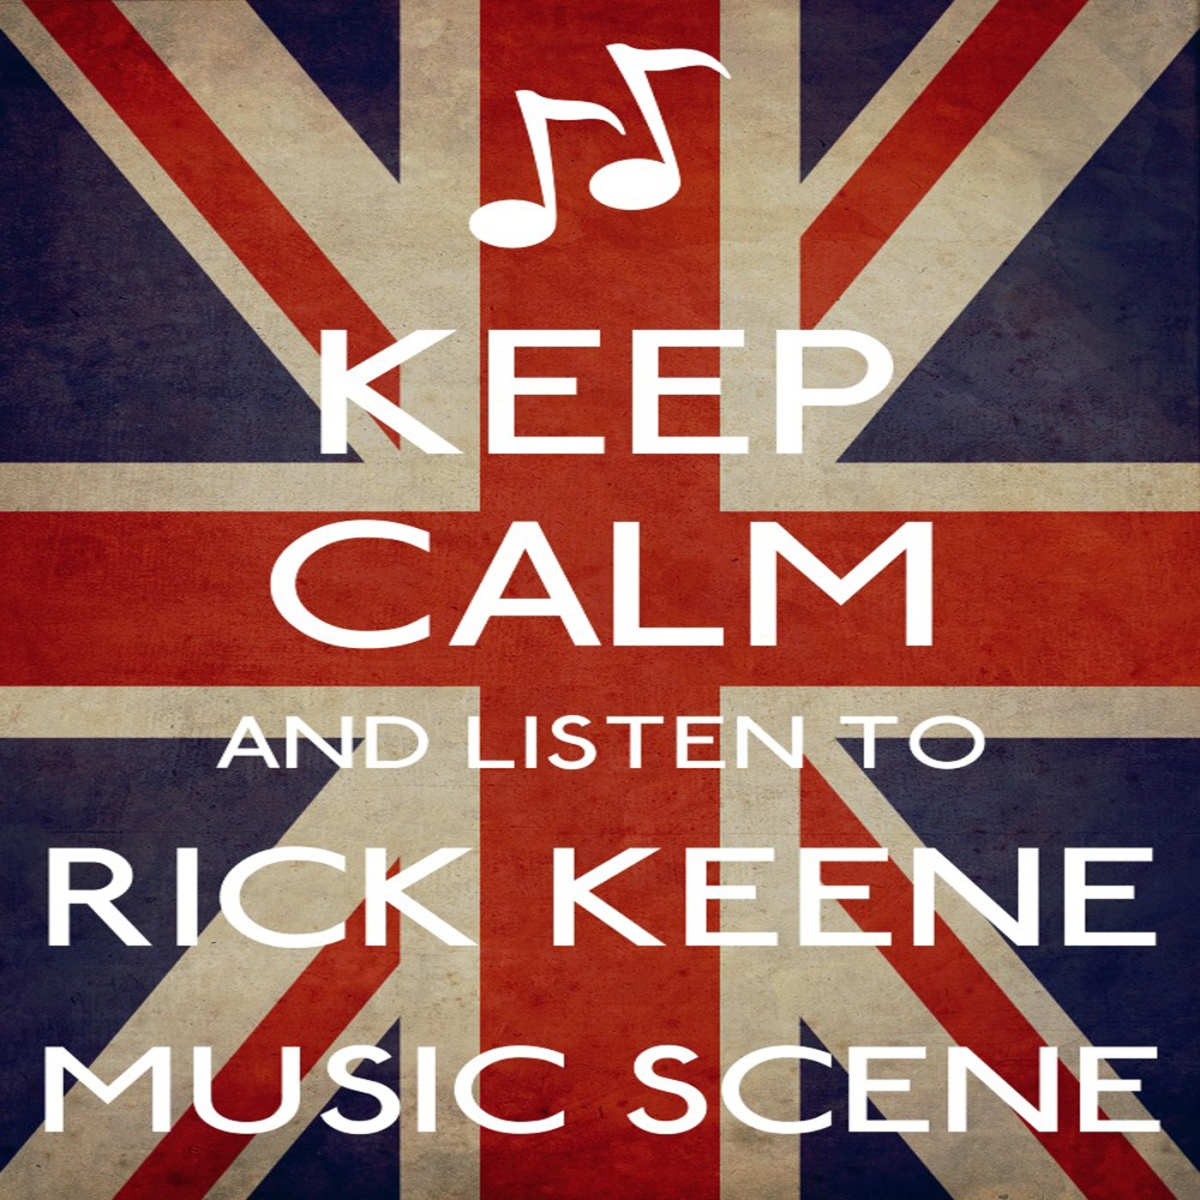 Rick Keene Music Scene – Some Upcoming Albums